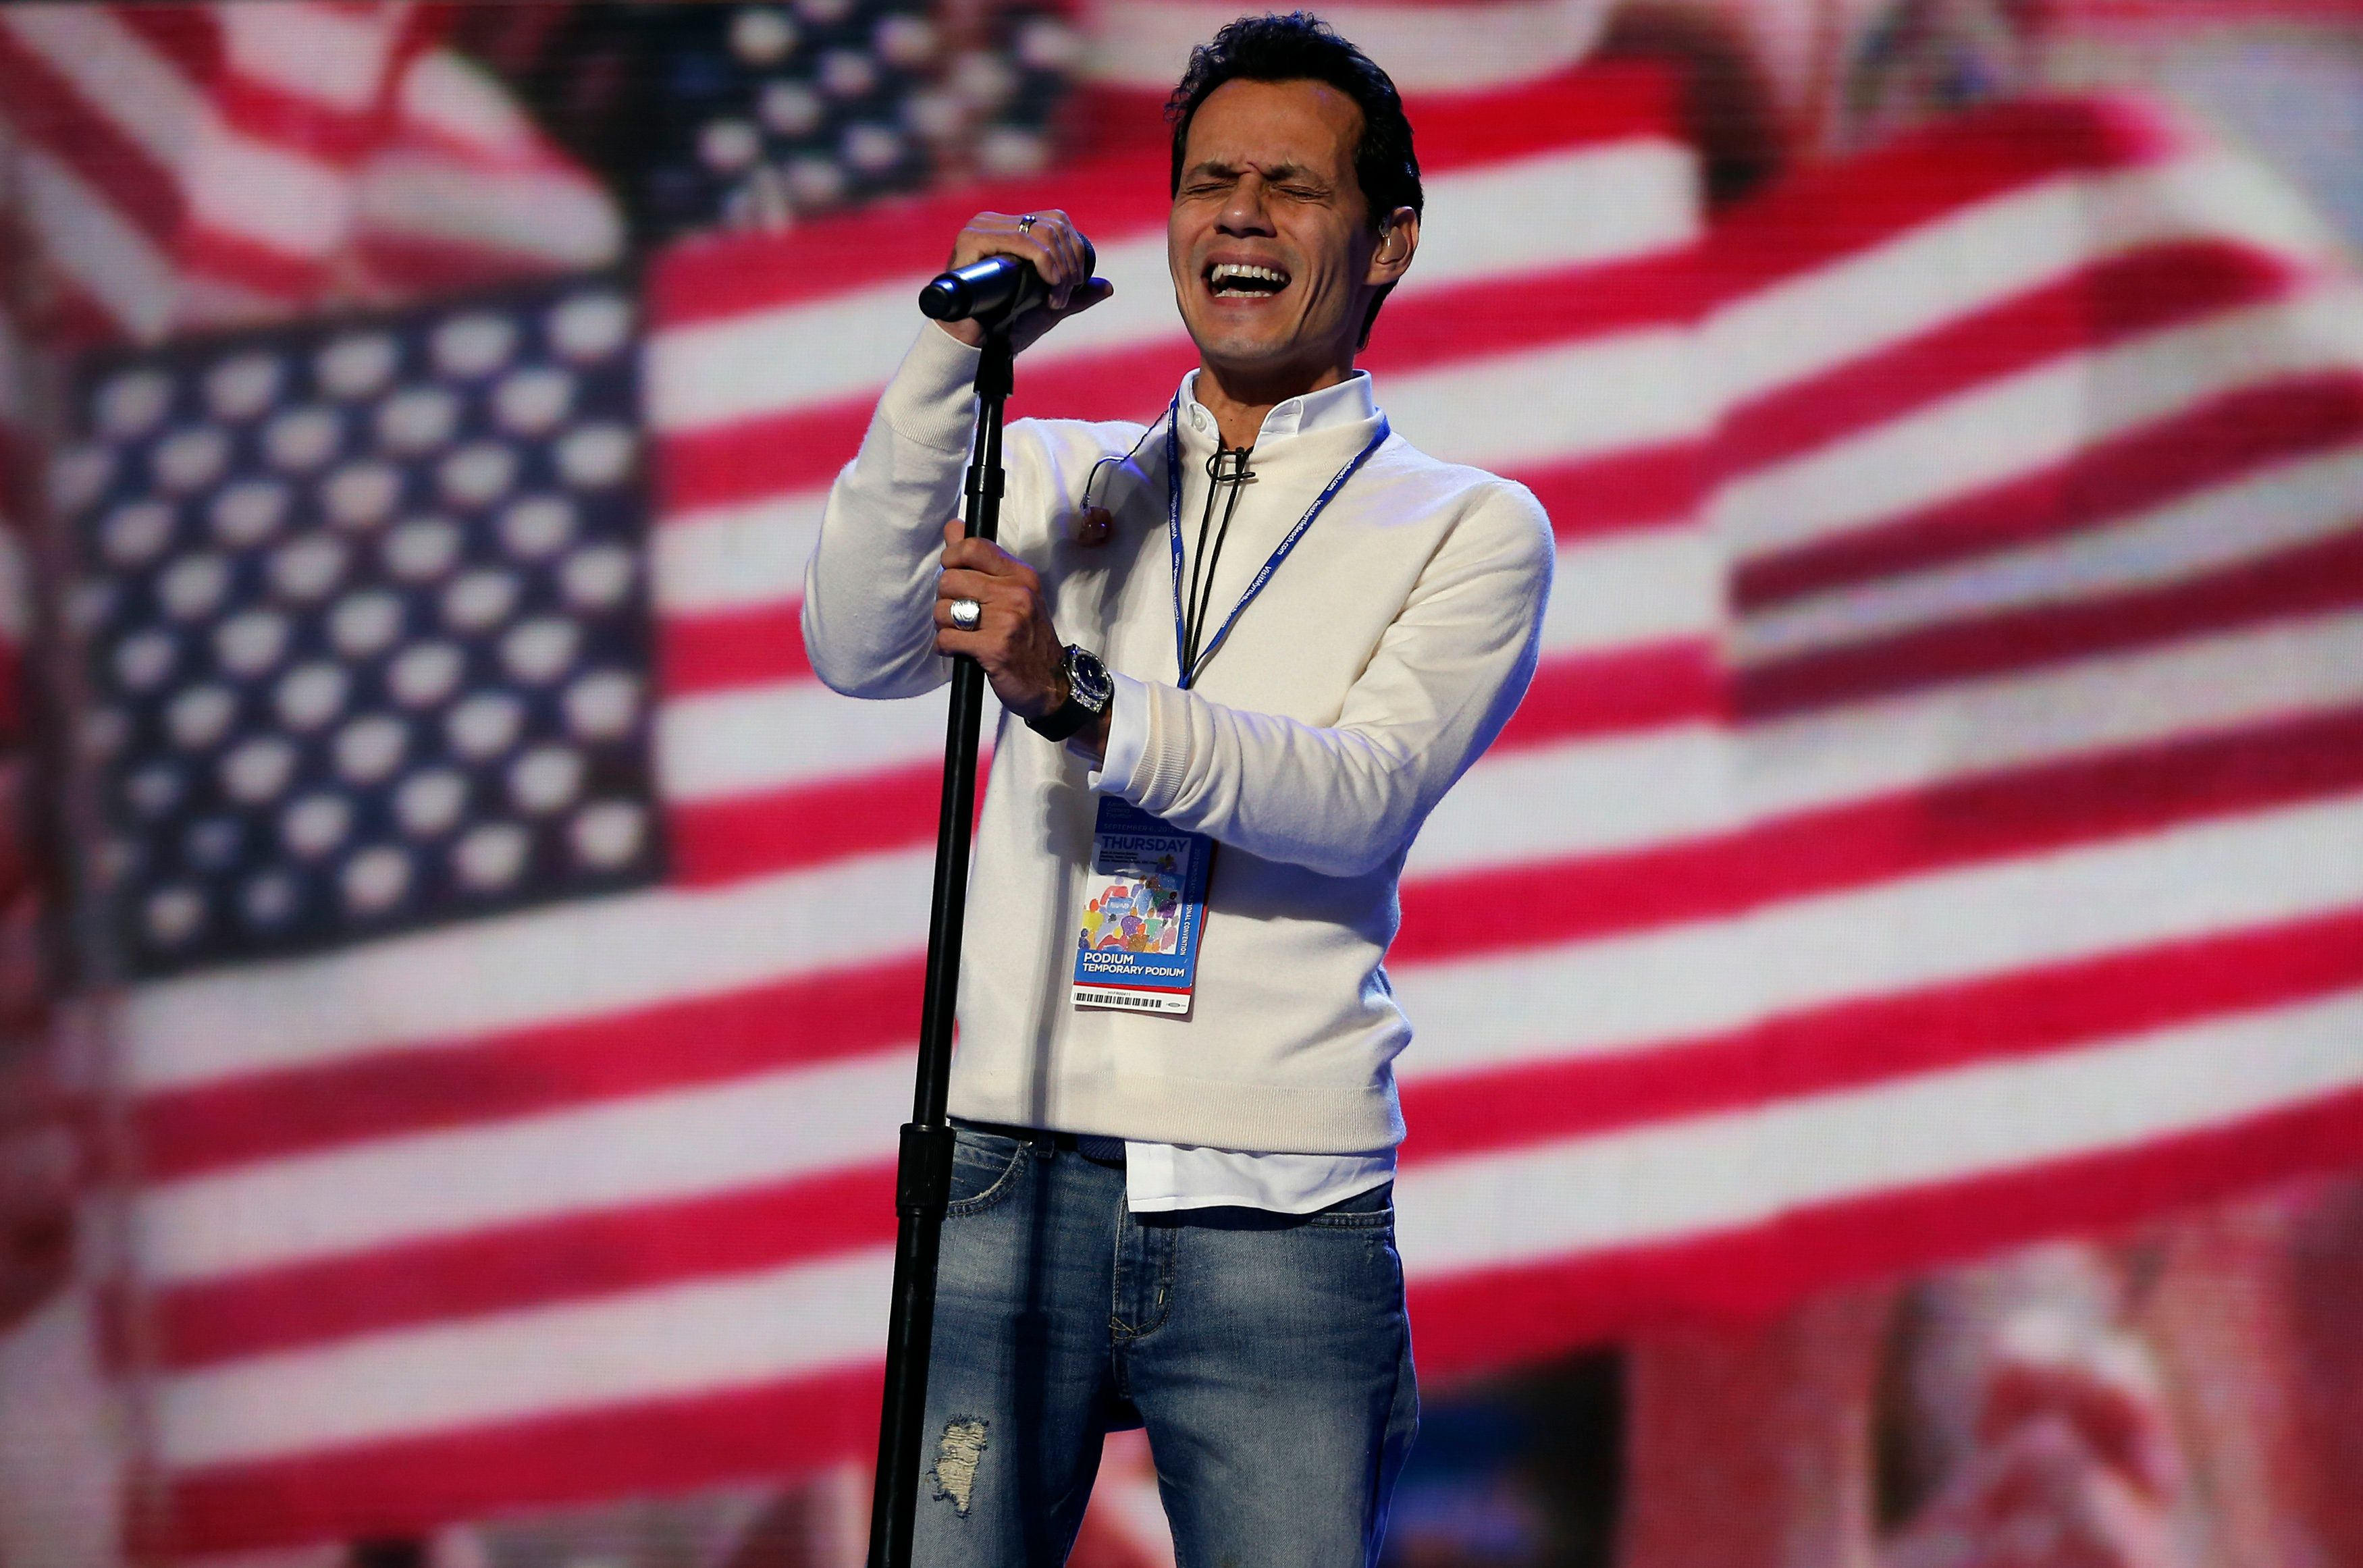 Singer Marc Anthony rehearses the national anthem prior to the final session of the Democratic National Convention in Charlotte, North Carolina September 6, 2012.    REUTERS/Jim Young (UNITED STATES  - Tags: POLITICS ELECTIONS ENTERTAINMENT)